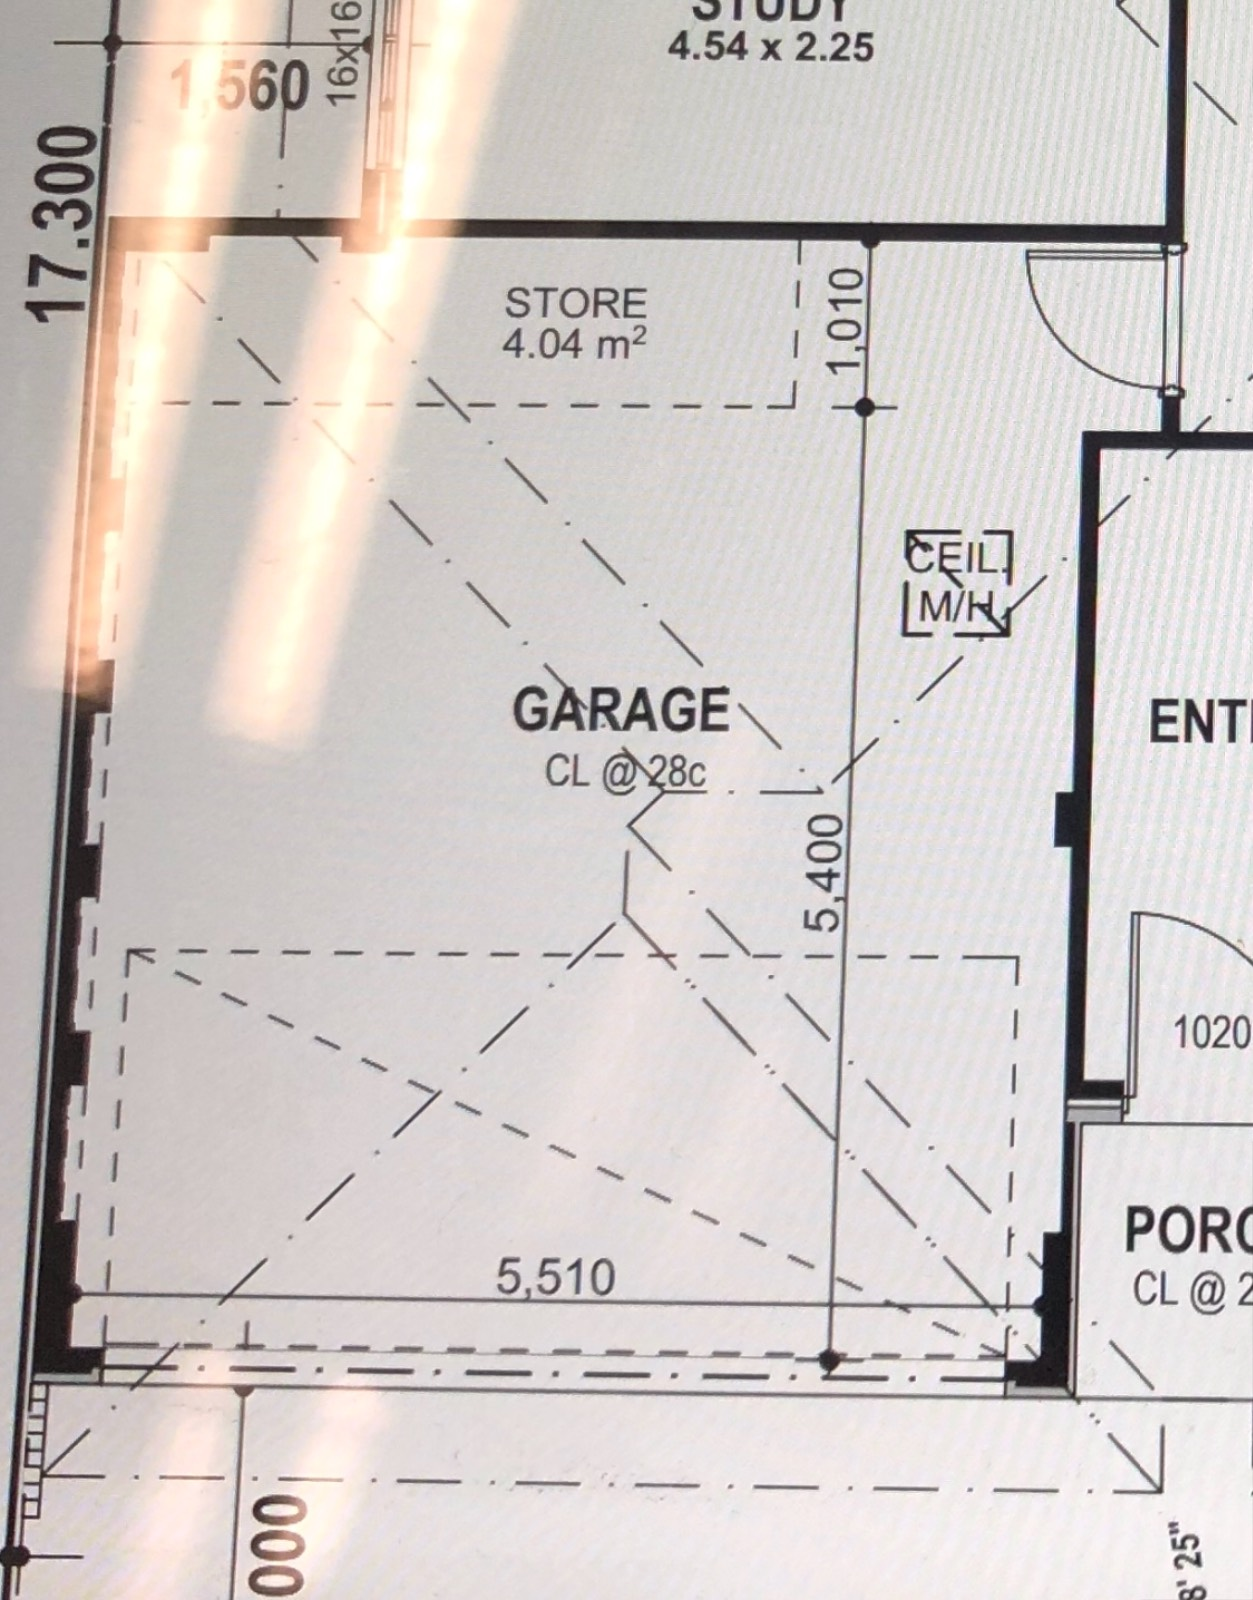 Is my potential double garage build too small?